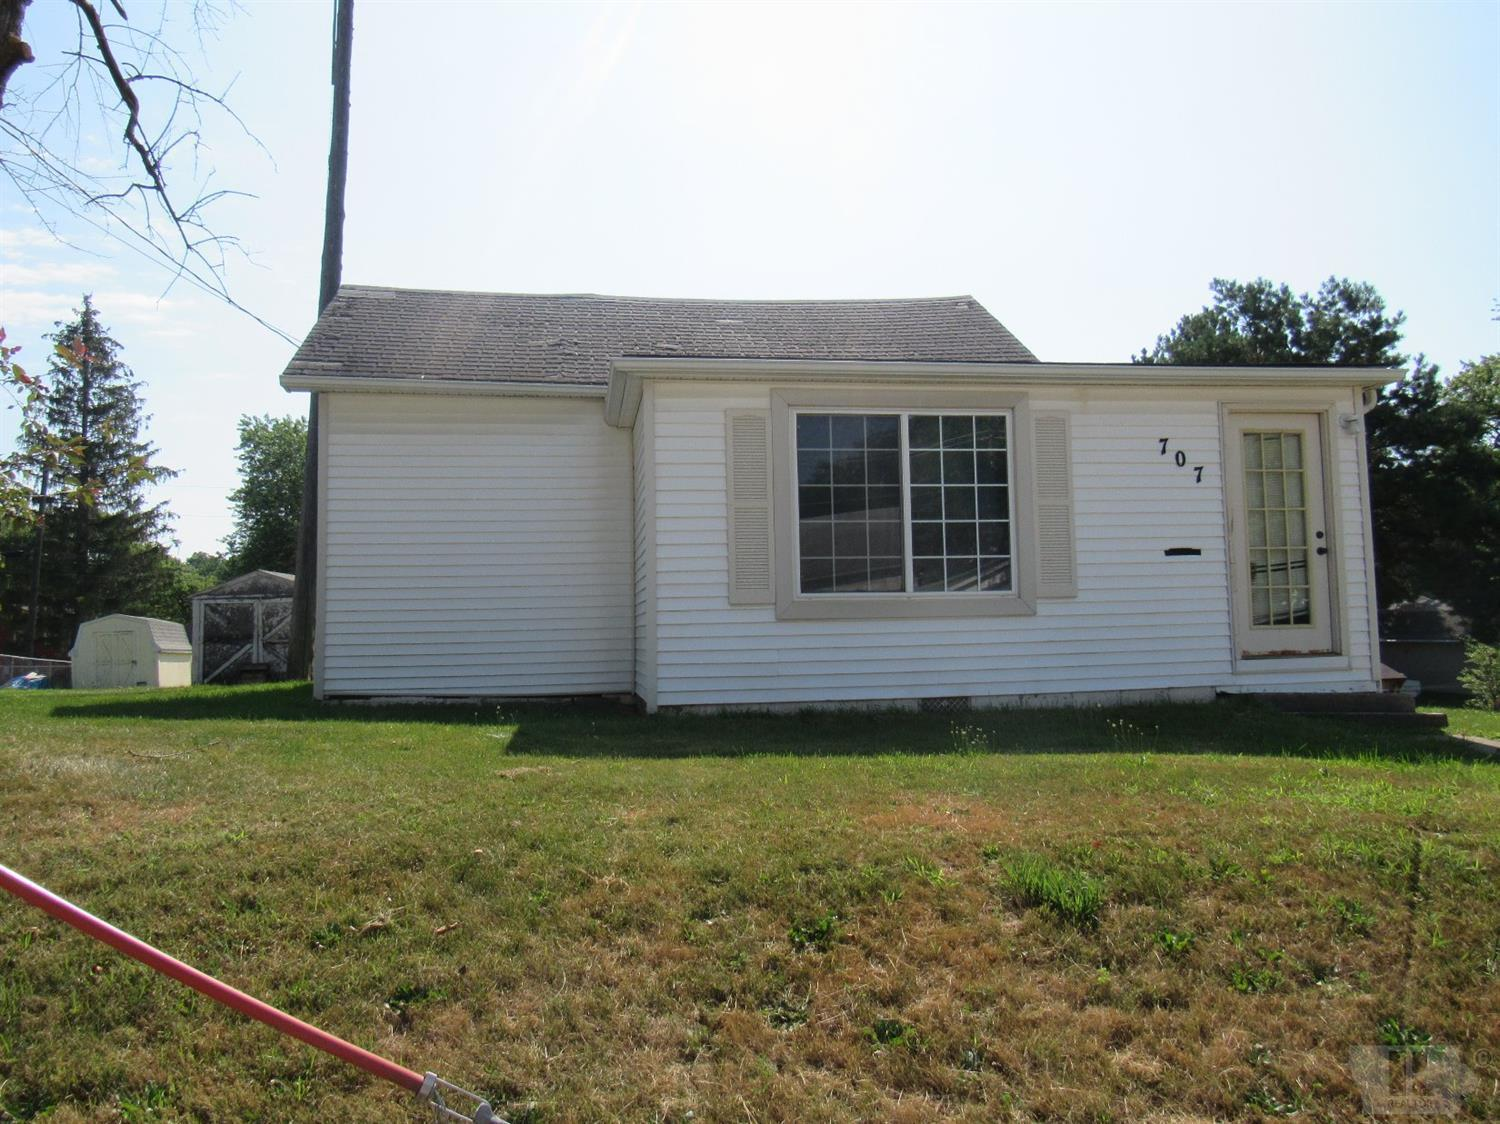 707 Cherry Property Photo - Creston, IA real estate listing